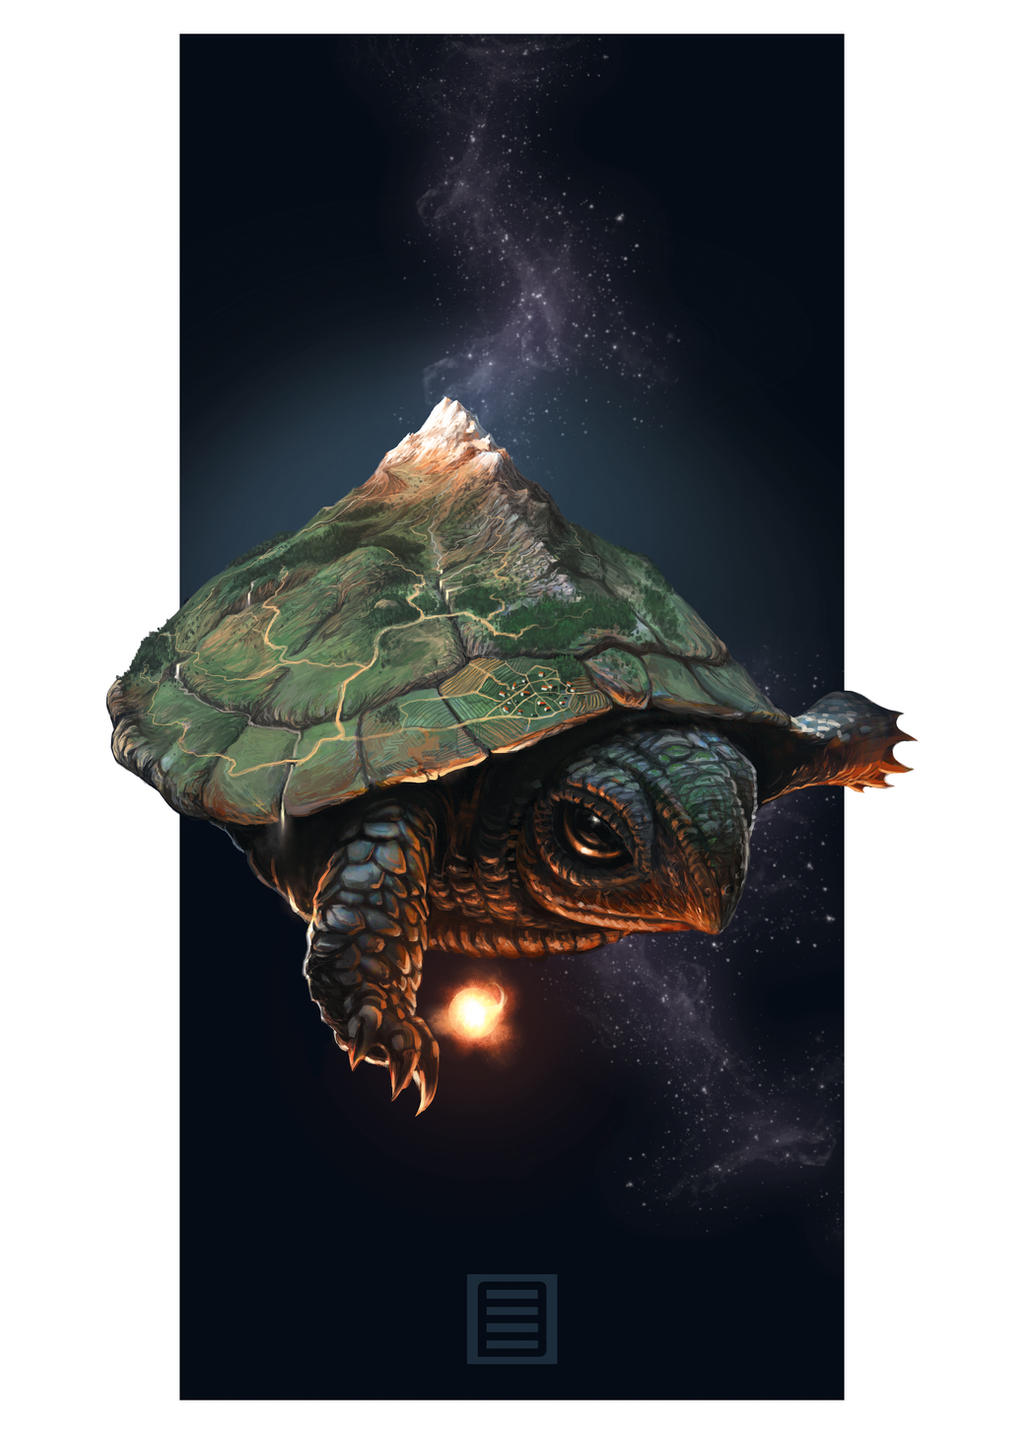 Celestial Turtle by lordFelwynn